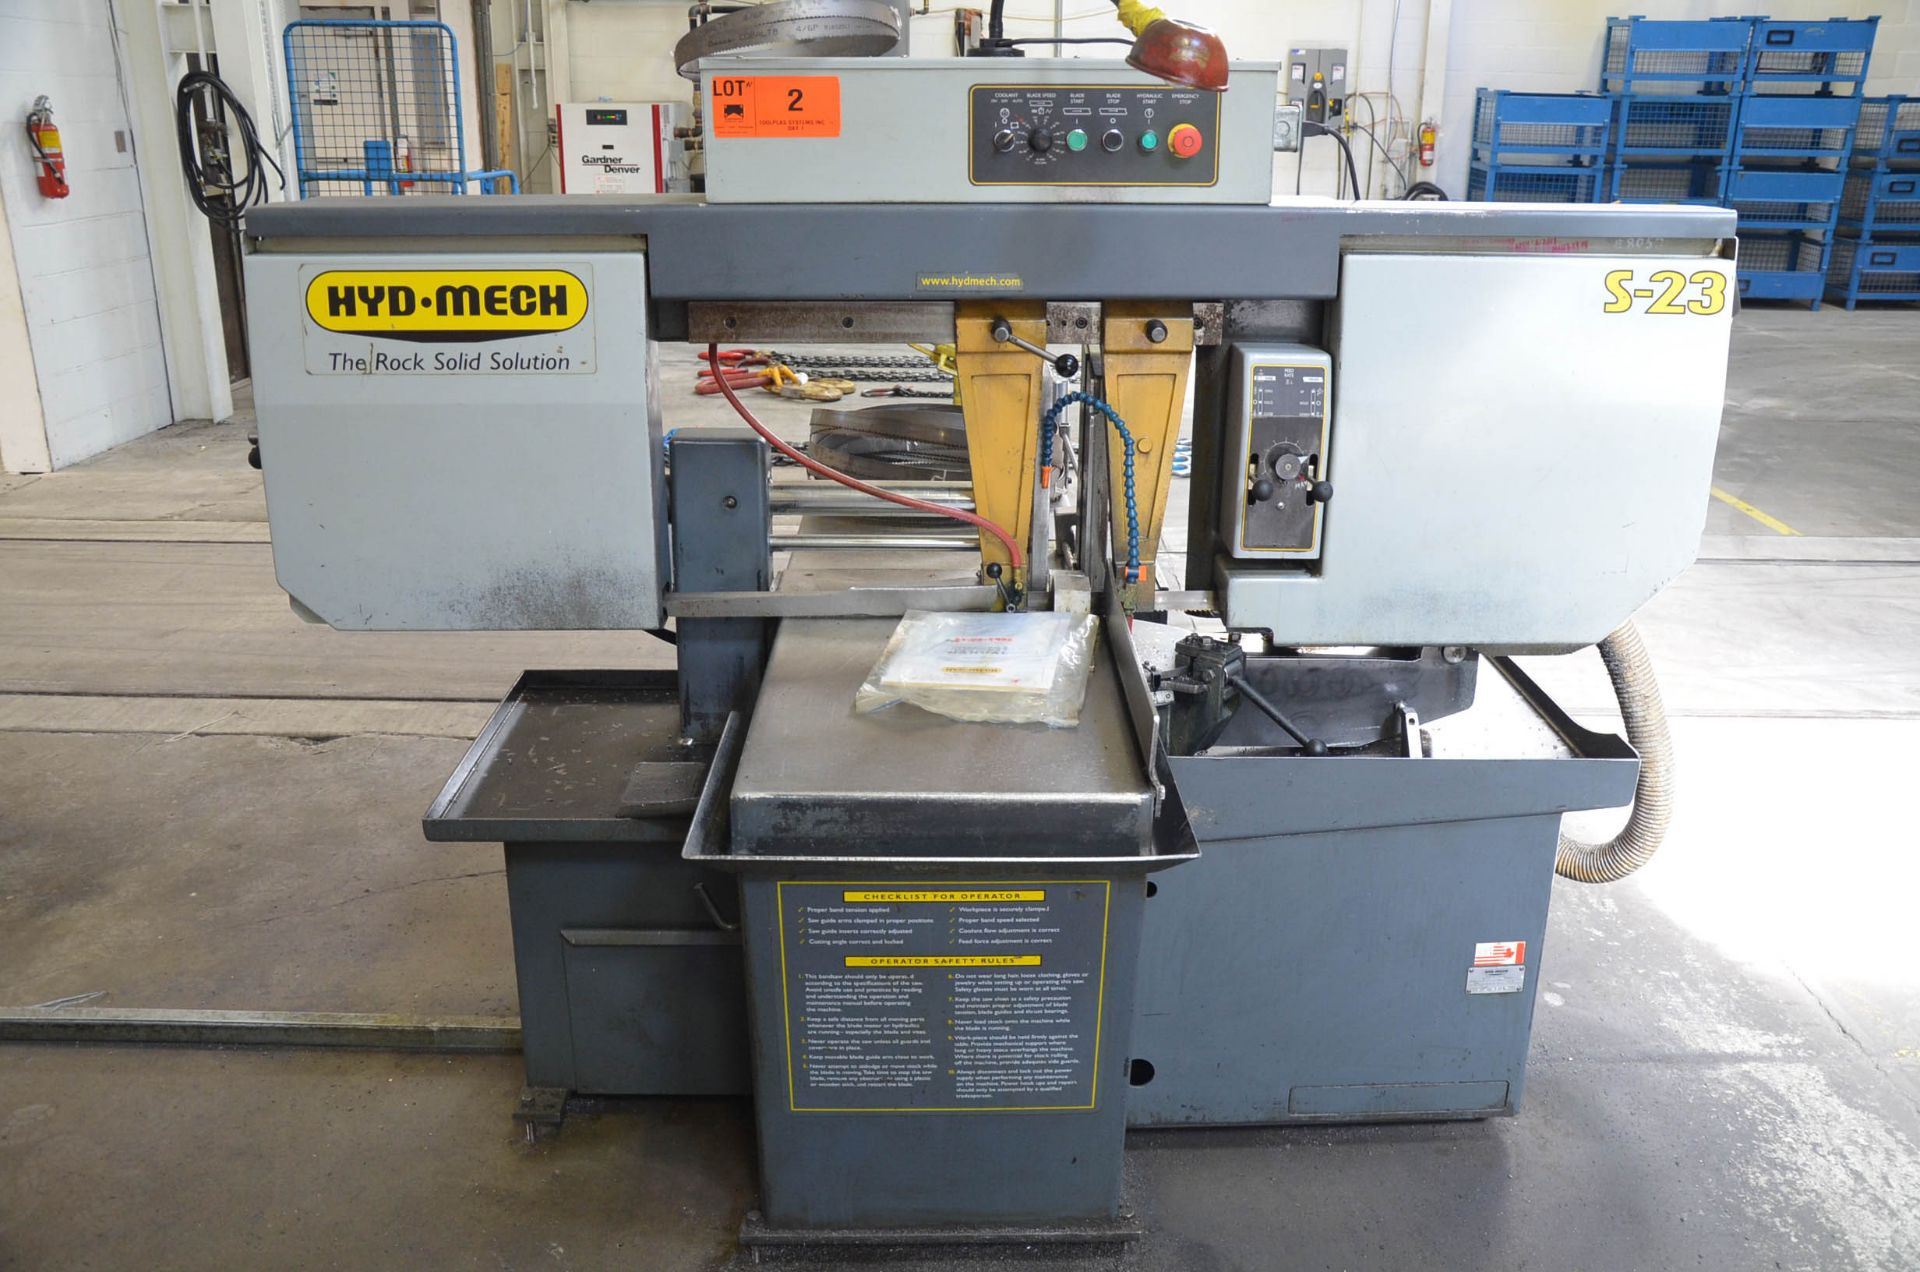 """HYD-MECH S-23 HORIZONTAL BAND SAW WITH 20"""" CAPACITY, HYDRAULIC VISE, COOLANT, CHIP AUGER, 600V/3PH/ - Image 6 of 8"""